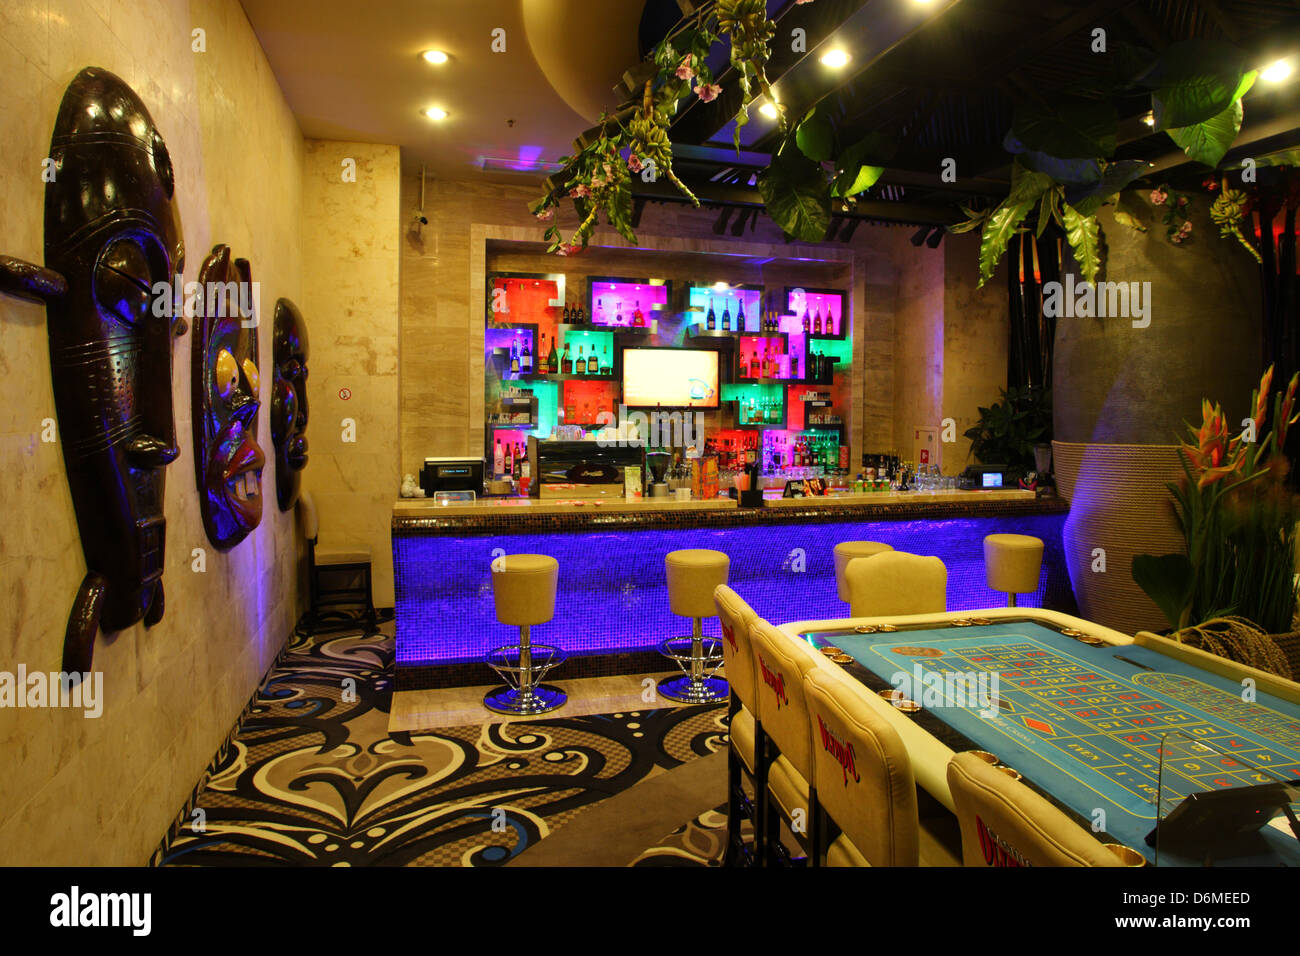 Bar in Olympic Casino, Riga, Latvia, Europe - Stock Image